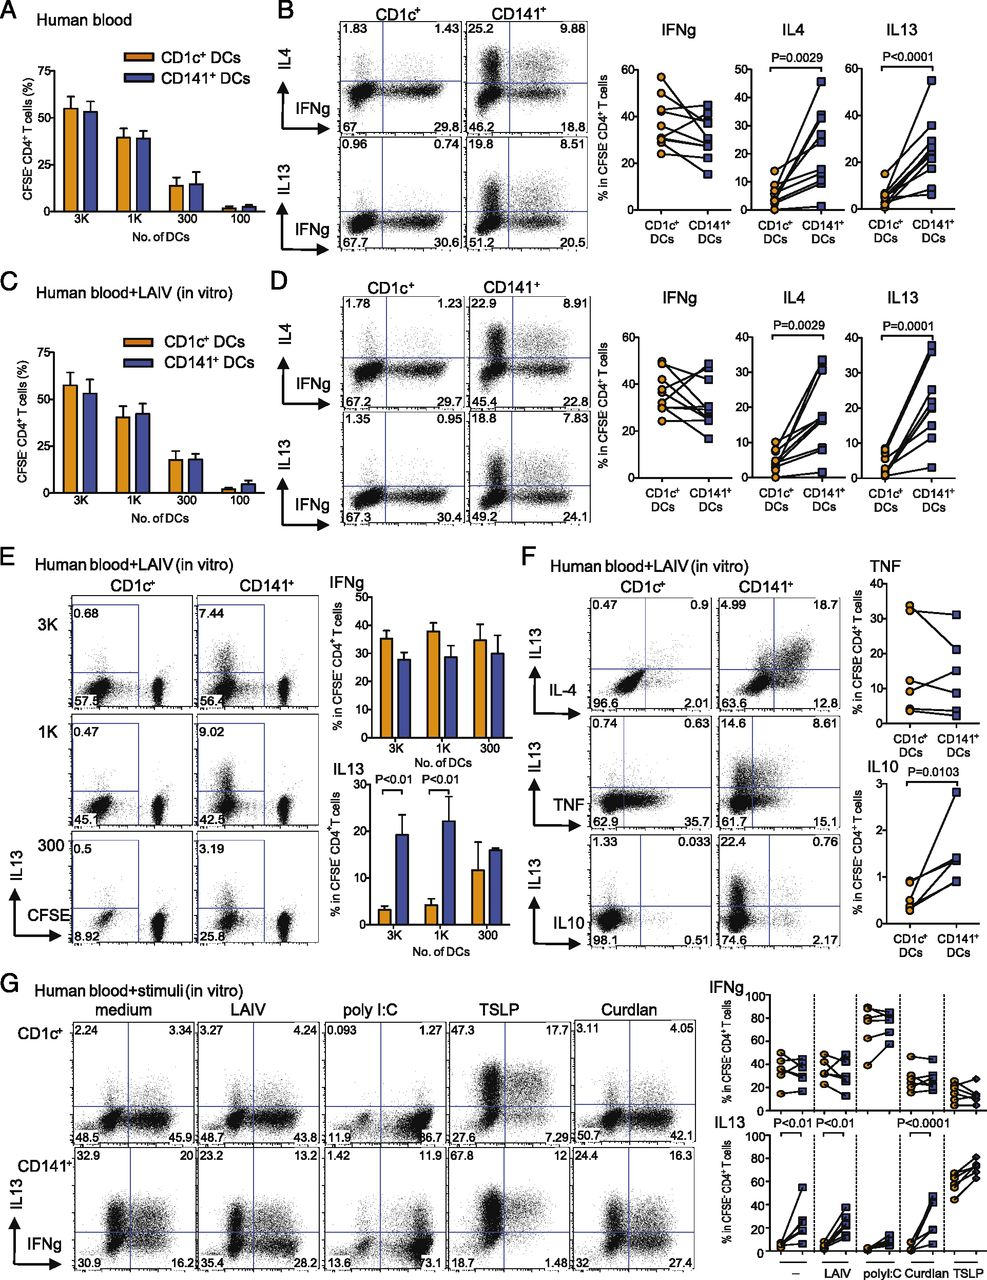 Human CD141+ Dendritic Cells Induce CD4+ T Cells To Produce